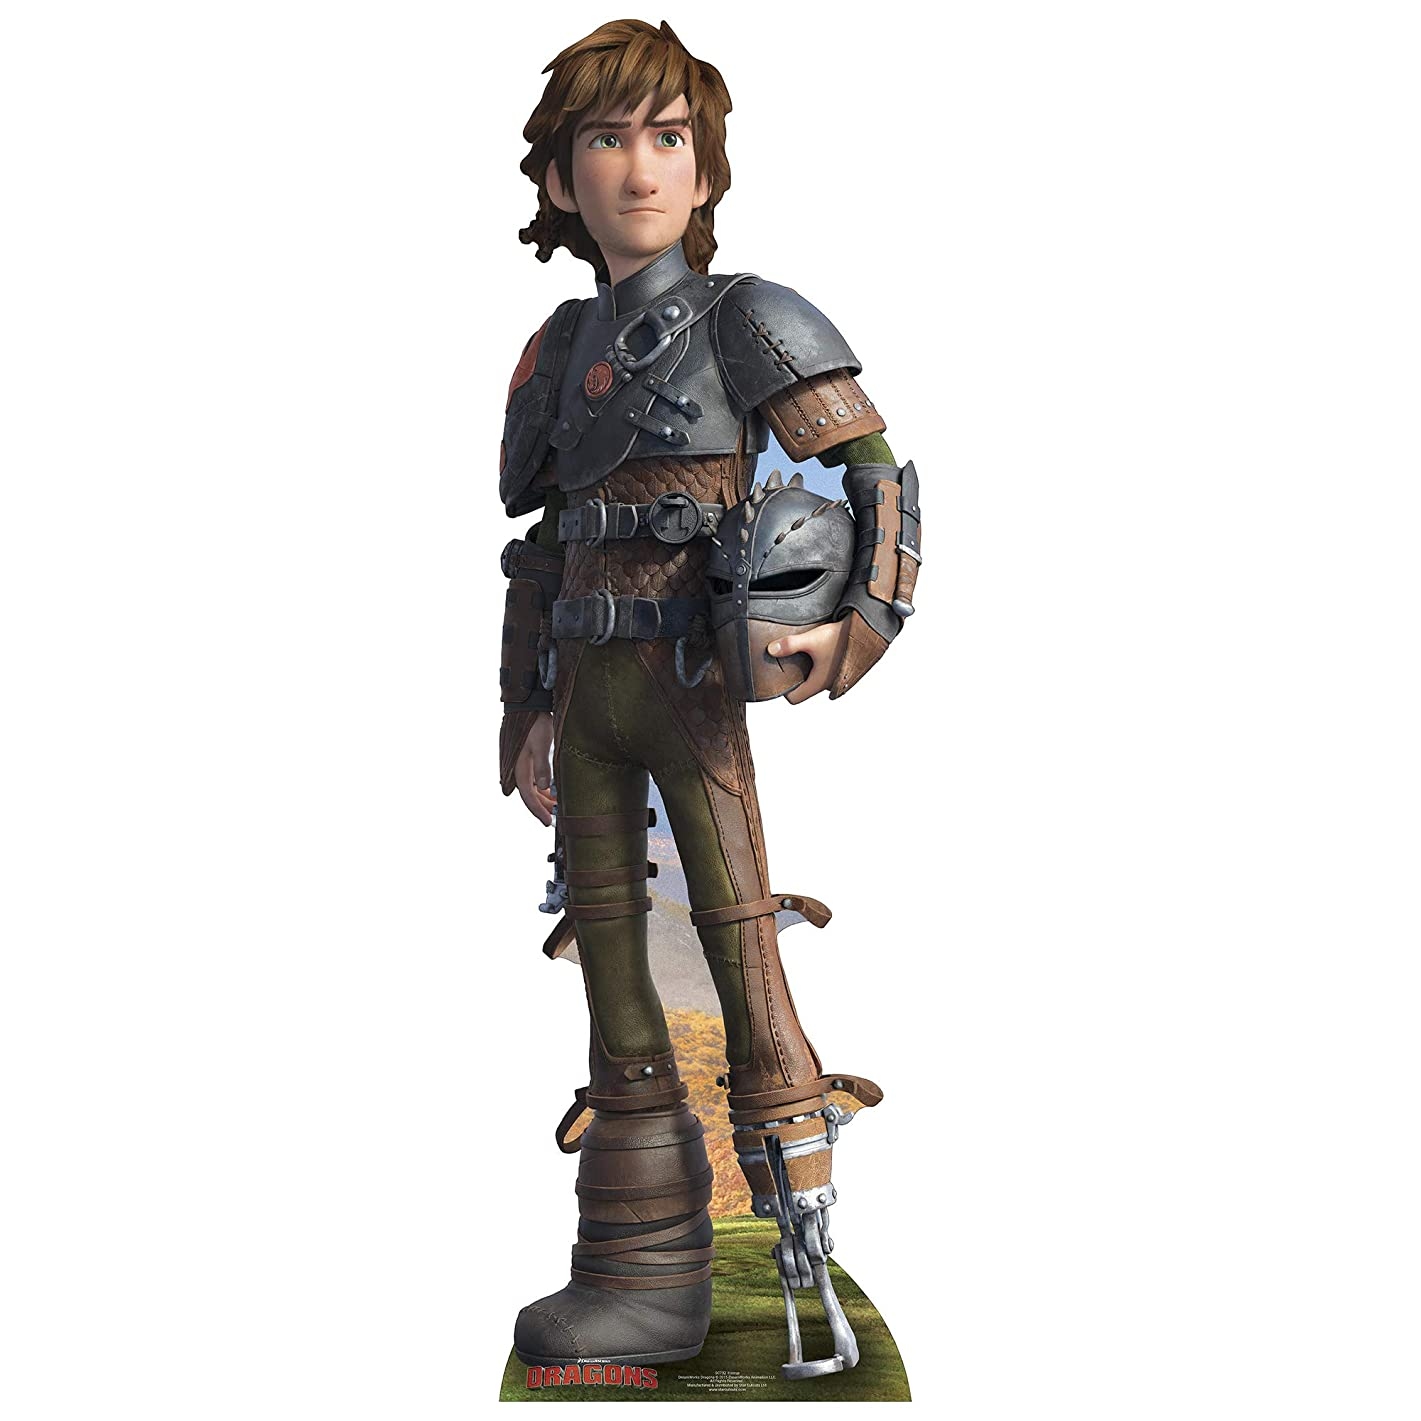 Hiccup How to Train Your Dragon 2 Standee